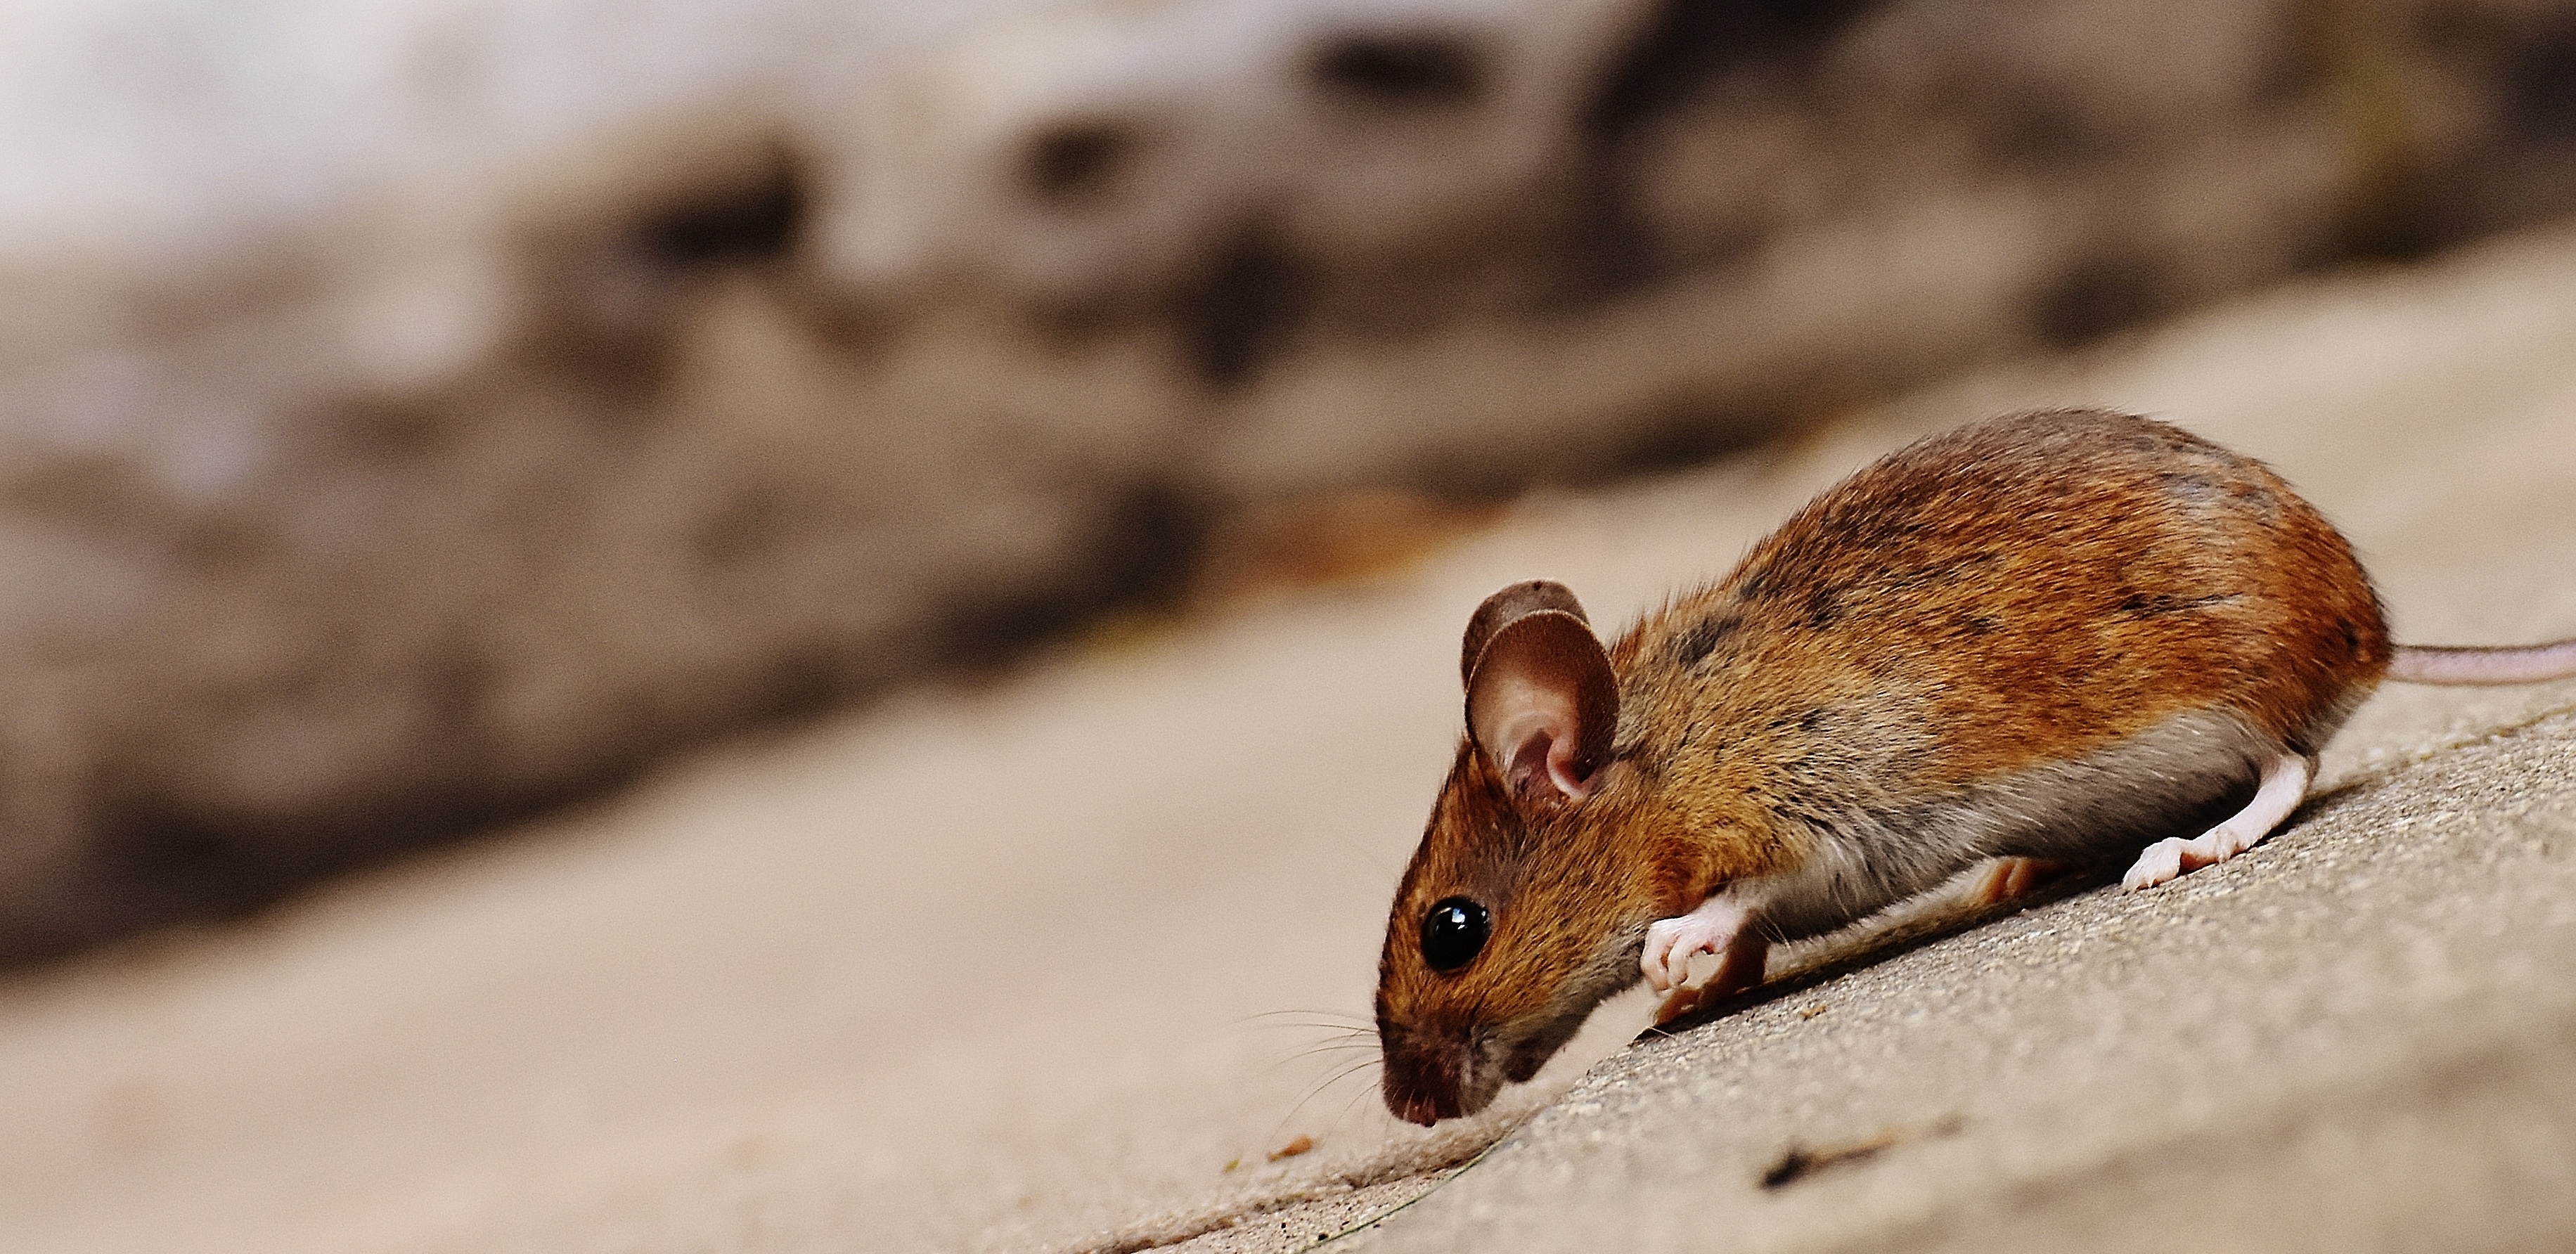 124353 download wallpaper Animals, Mouse, Rodent, Hillock, Descent screensavers and pictures for free